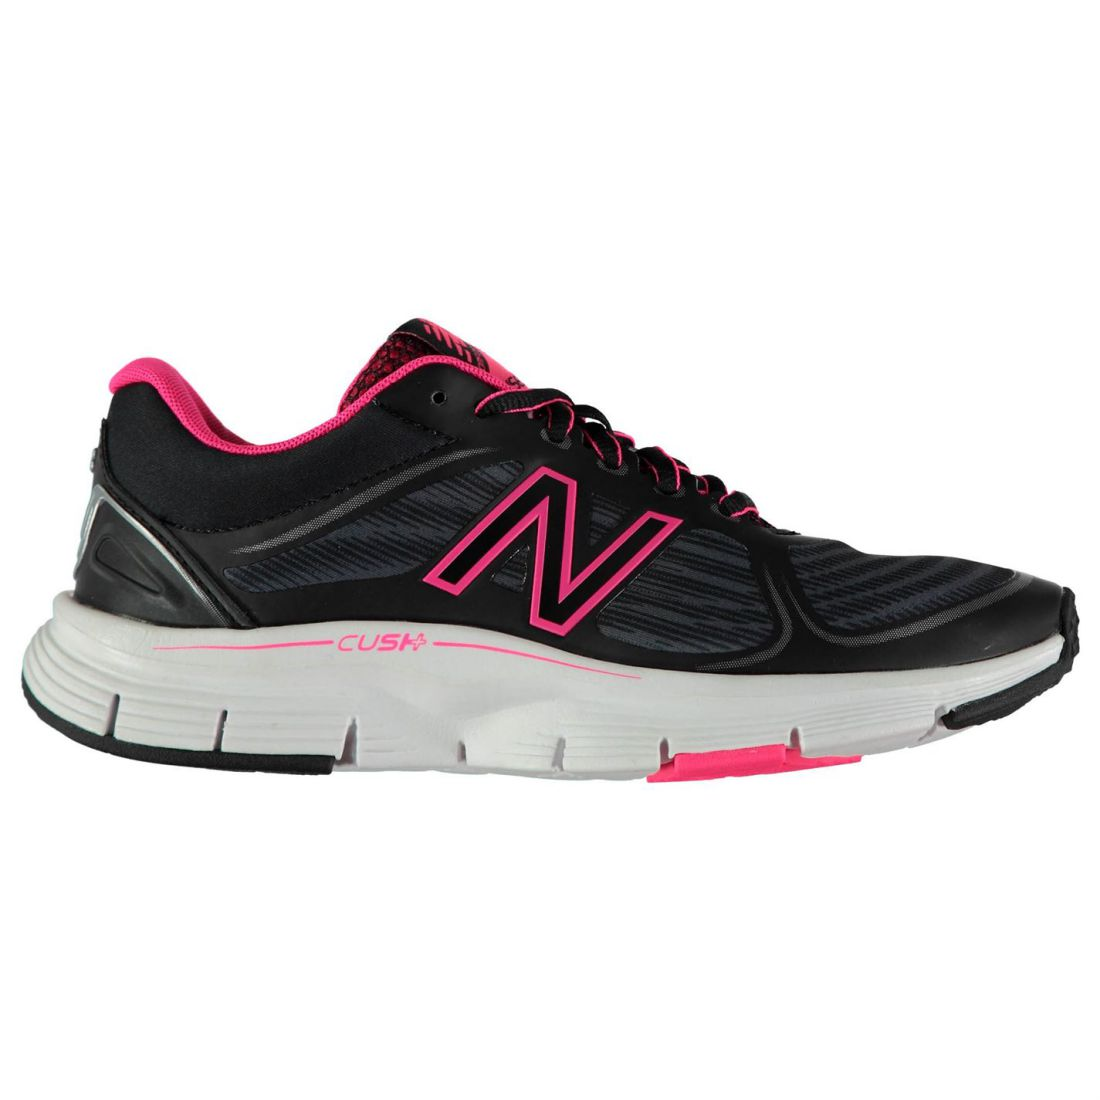 info for 9db2e 2bf3e New Balance RiseMv1 Running Shoes Road Womens. 360 spin